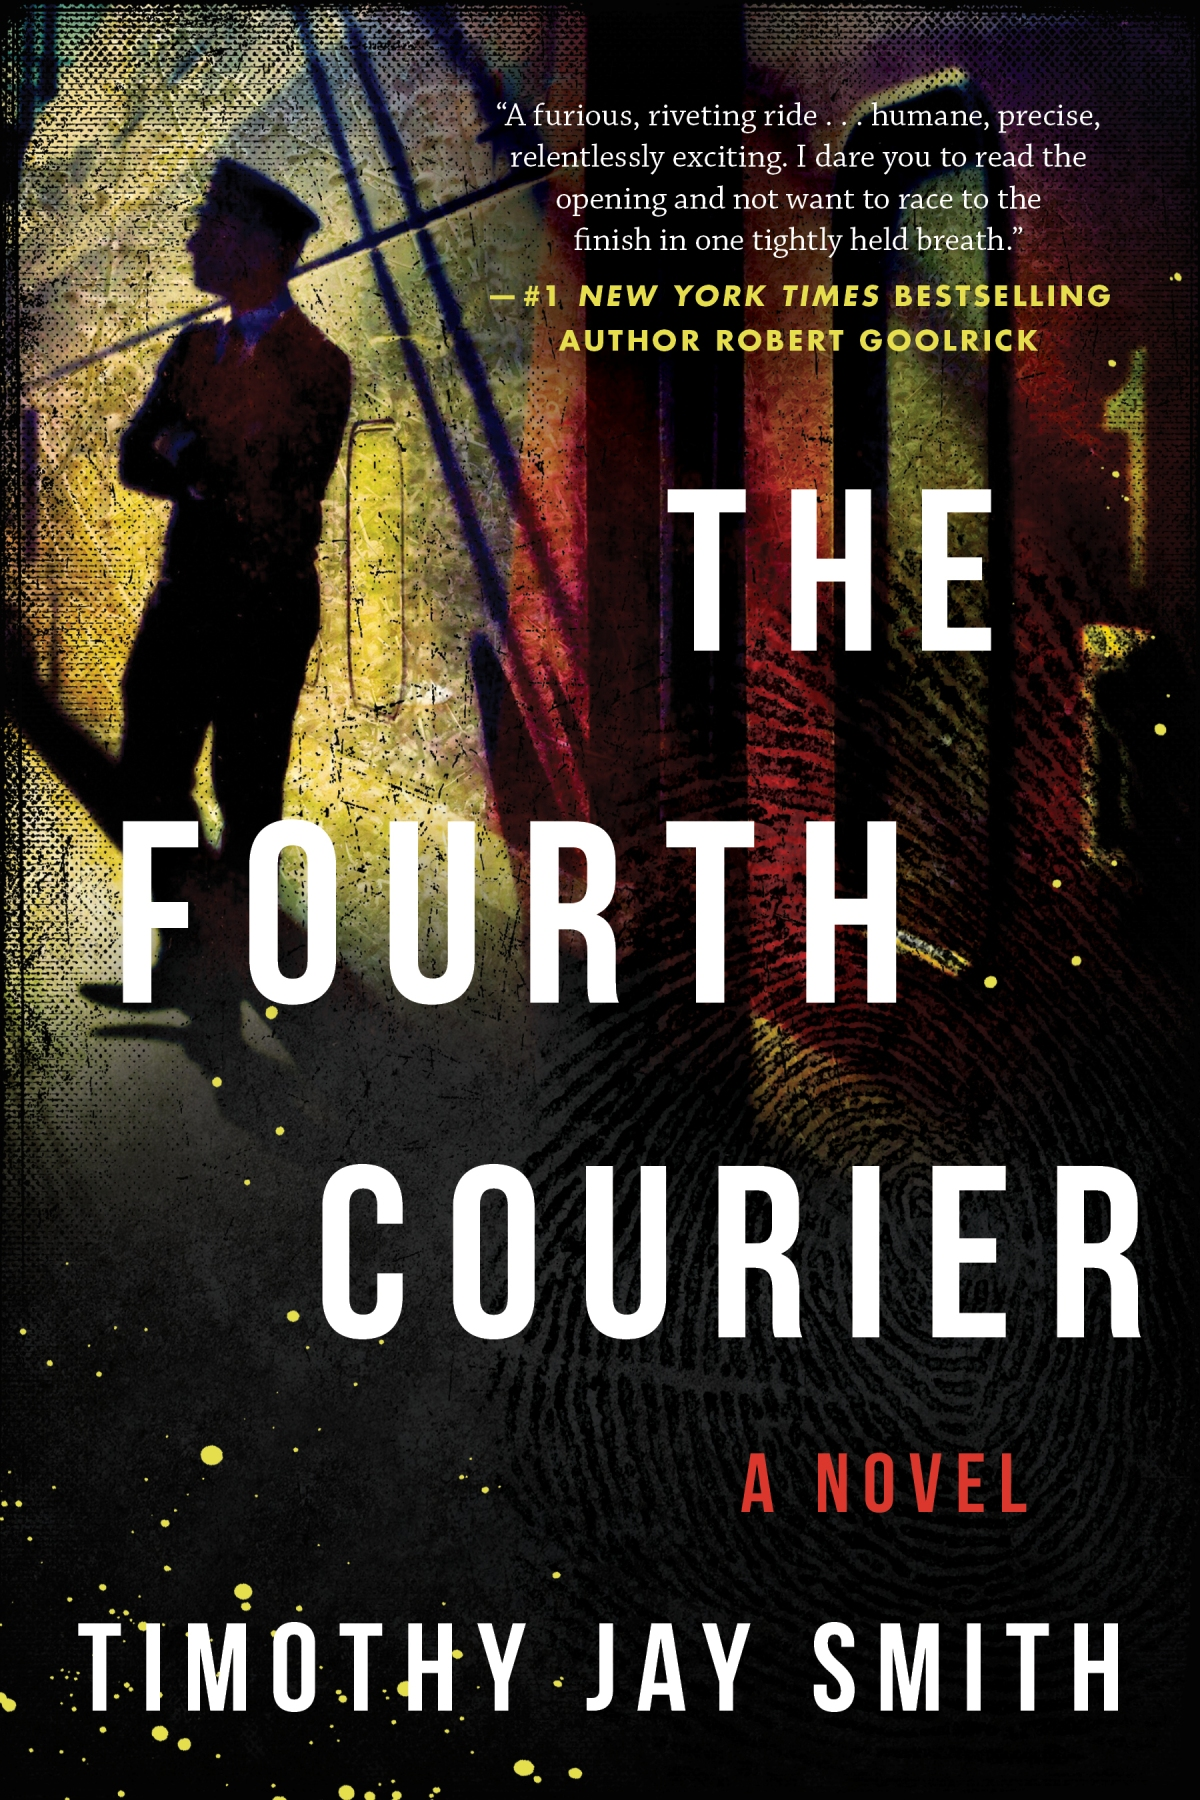 The Fourth Courier By Timothy Jay Smith Review